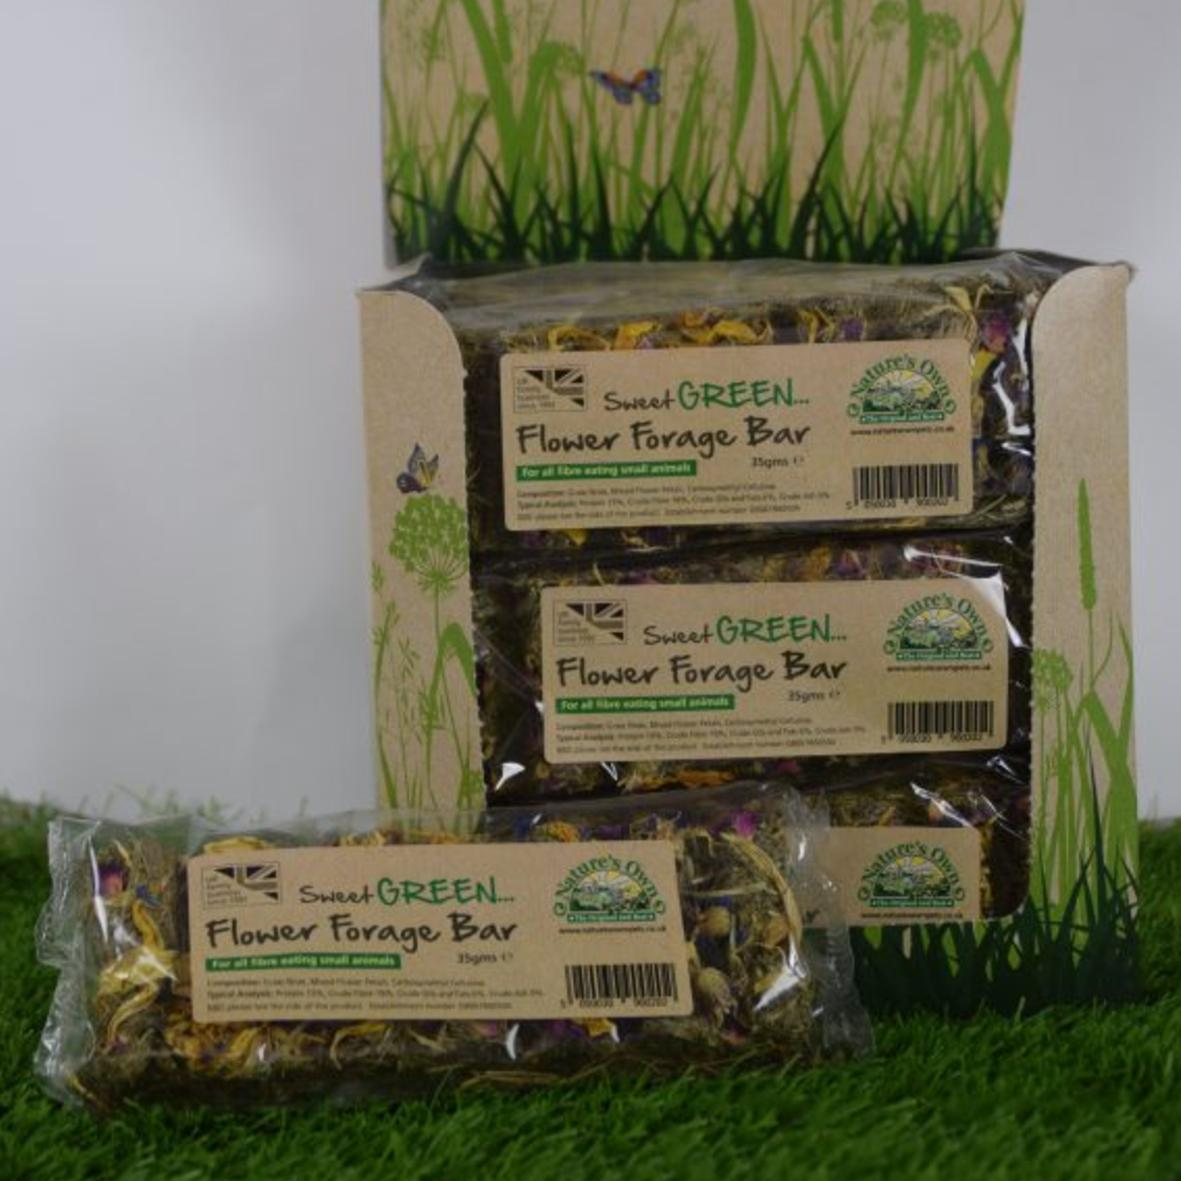 Natures Own Sweet Green Flower Forage Bar 35g